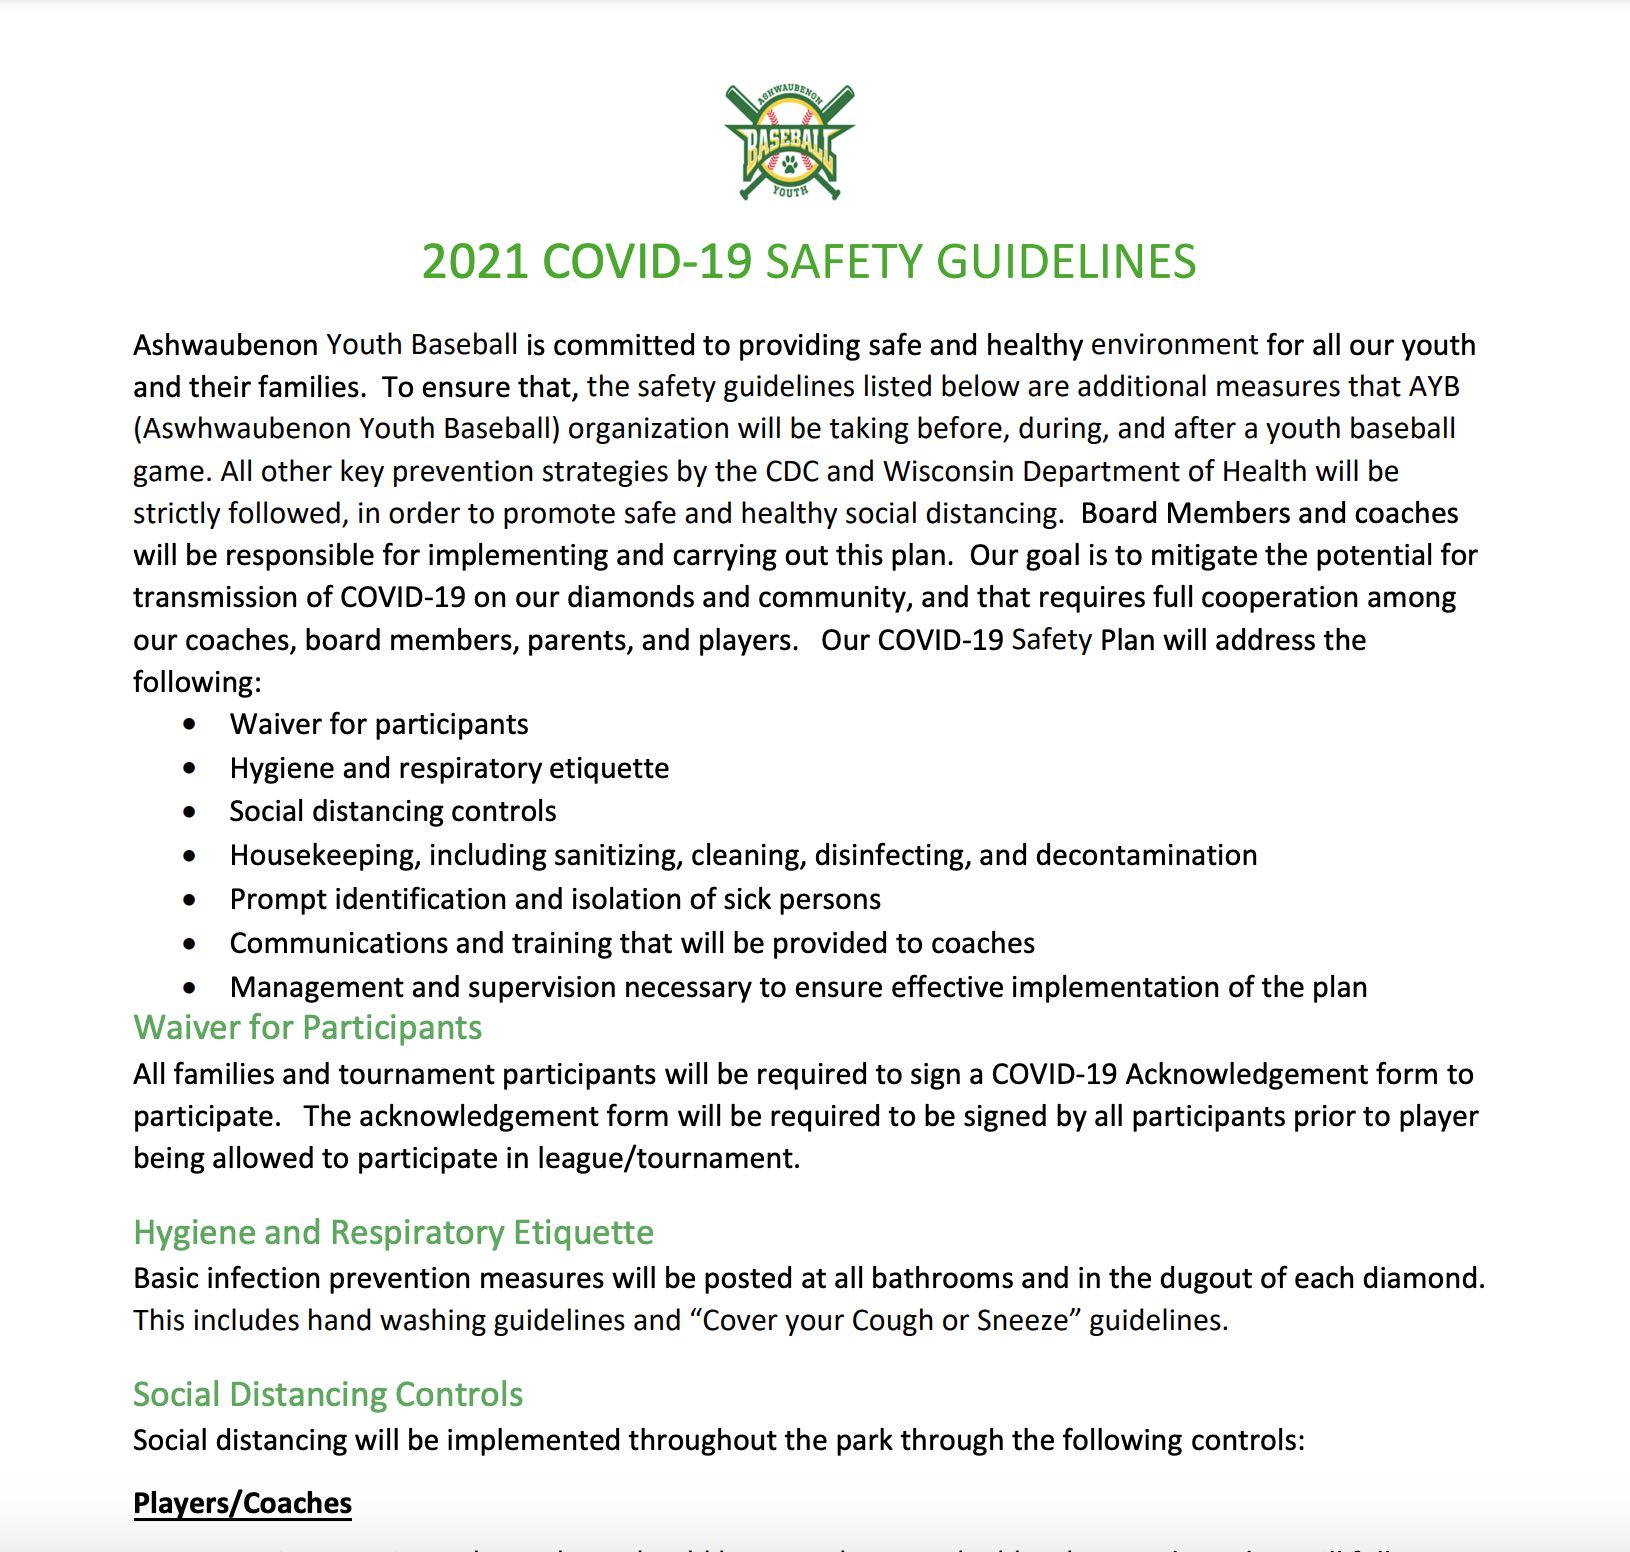 2021 League COVID-19 Safety Guidelines